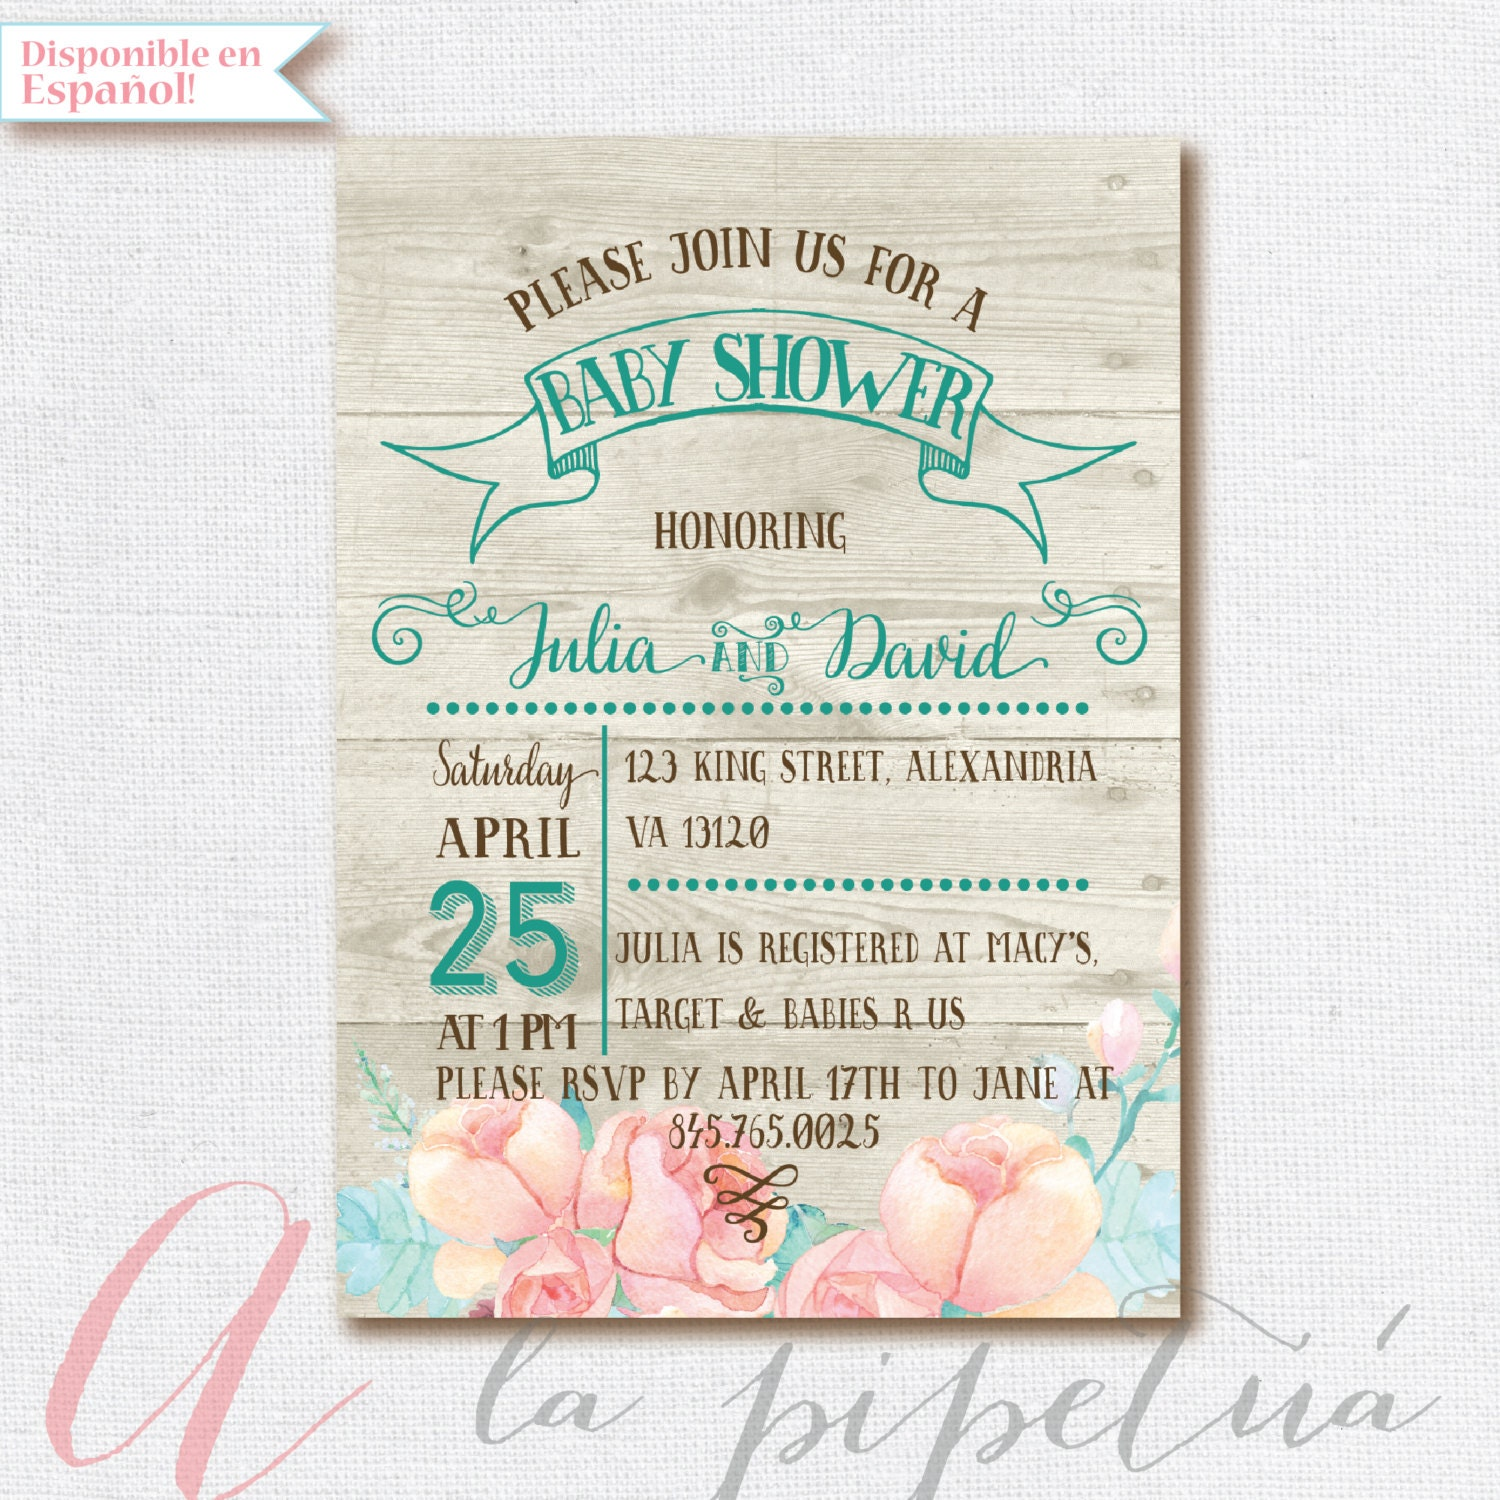 baby shower invitation coed babyshower wood by pipetua on etsy